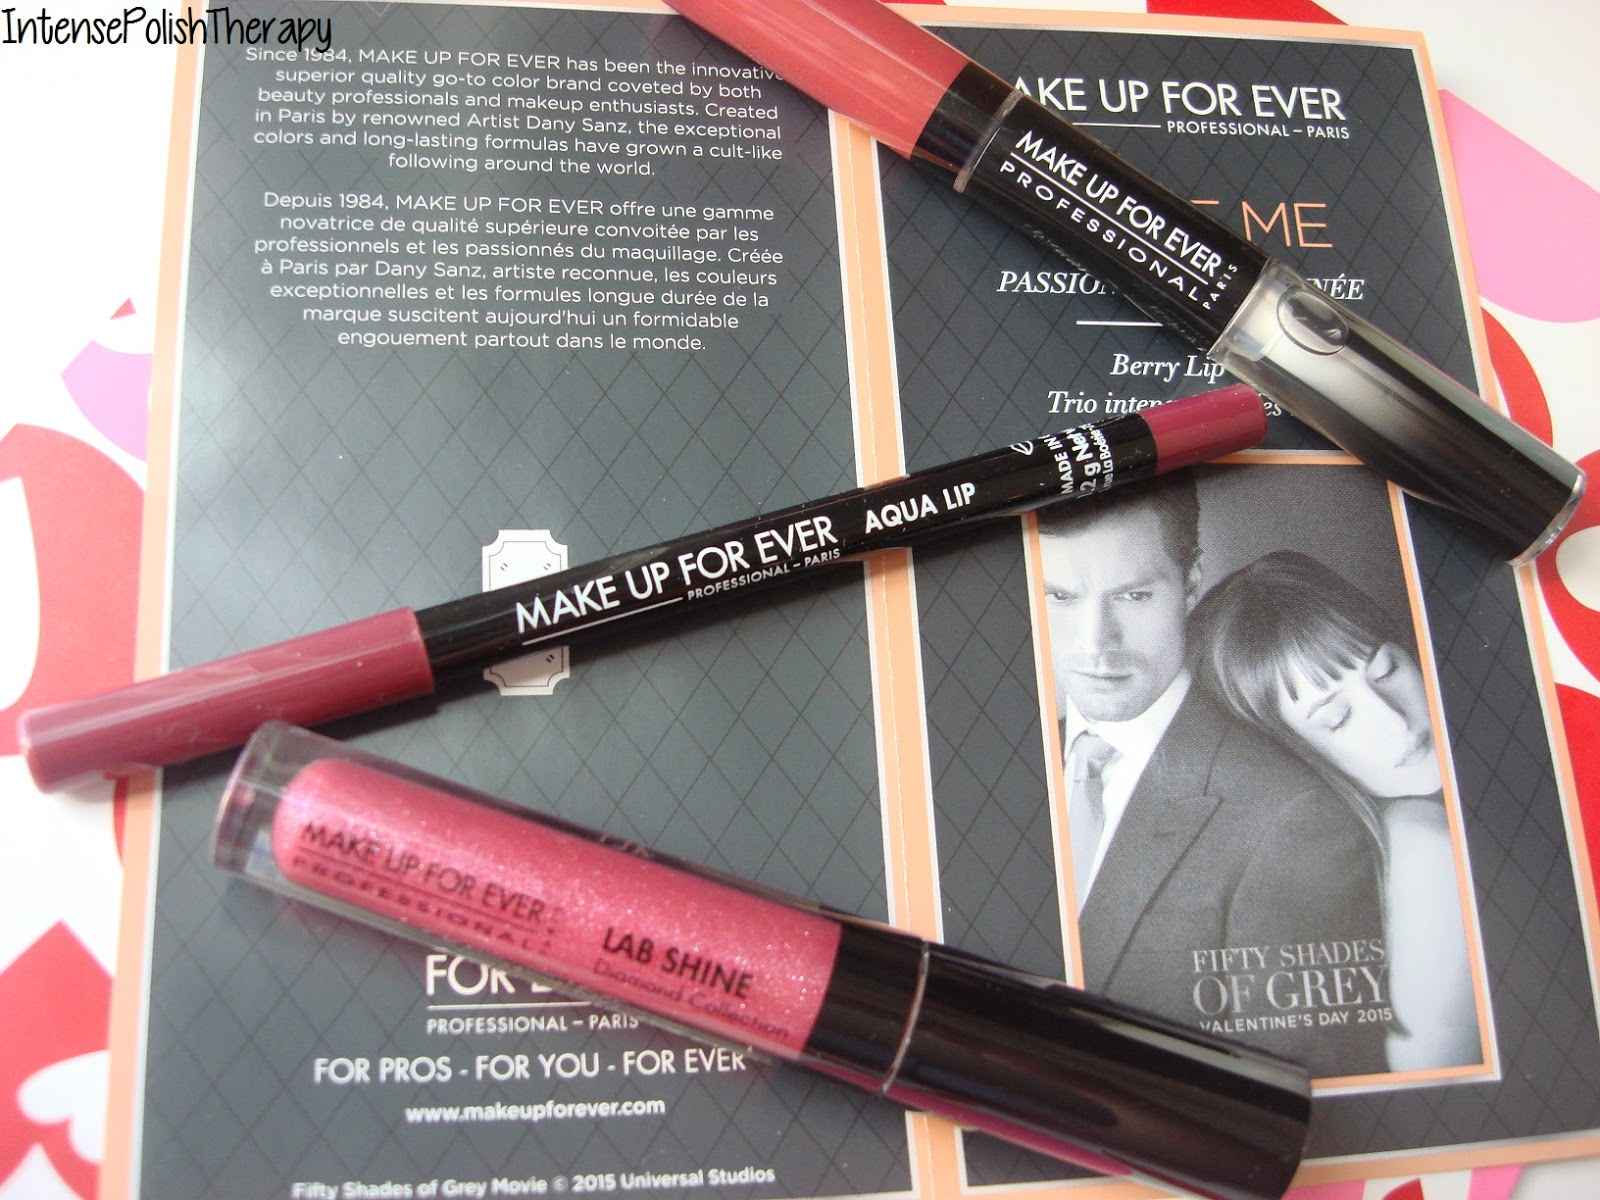 Passionate / Berry Lip Trio: Aqua Lip 10C, Aqua Rouge 50 (NEW shade) & Lab Shine Lip Gloss D4